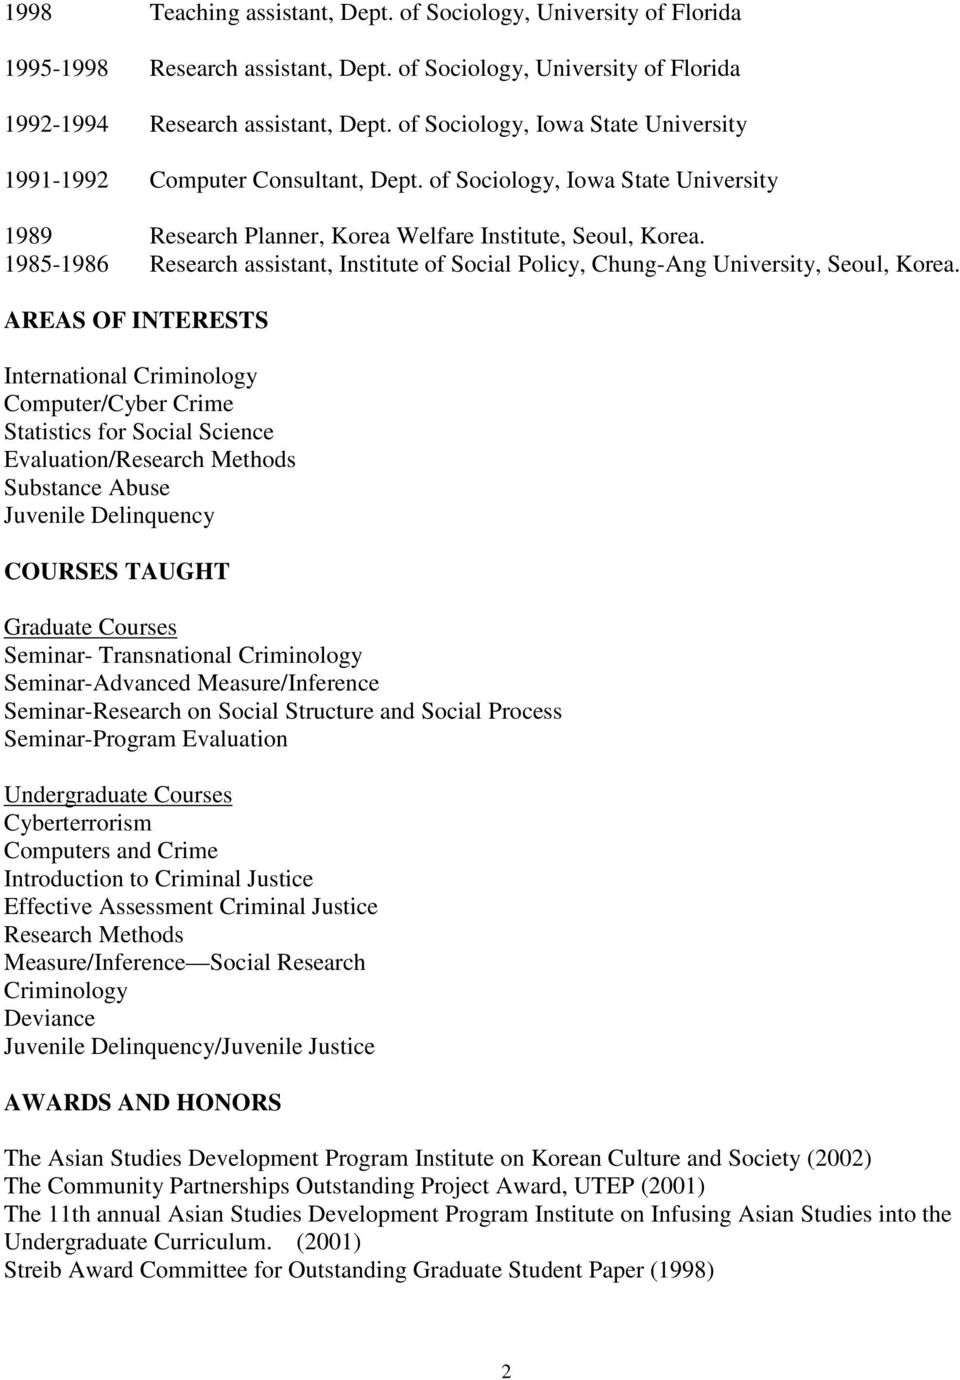 1985-1986 Research assistant, Institute of Social Policy, Chung-Ang University, Seoul, Korea.